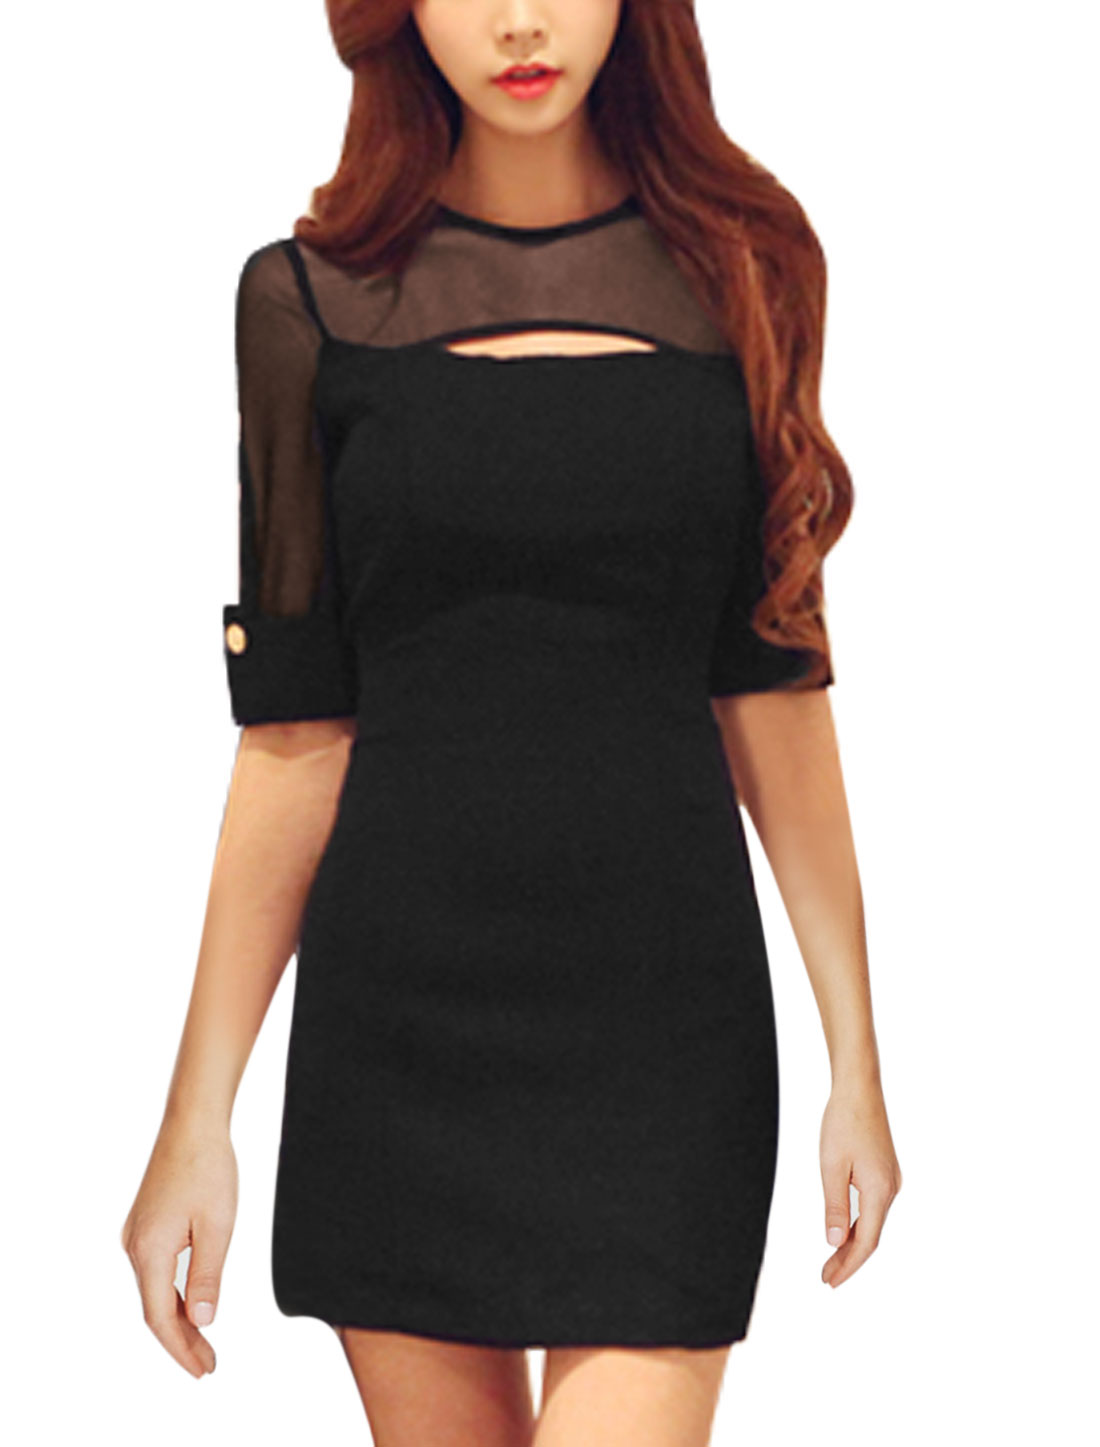 Women Elbow Sleeves Mesh Spliced Cut Out York Newly Sheathy Dress Black S